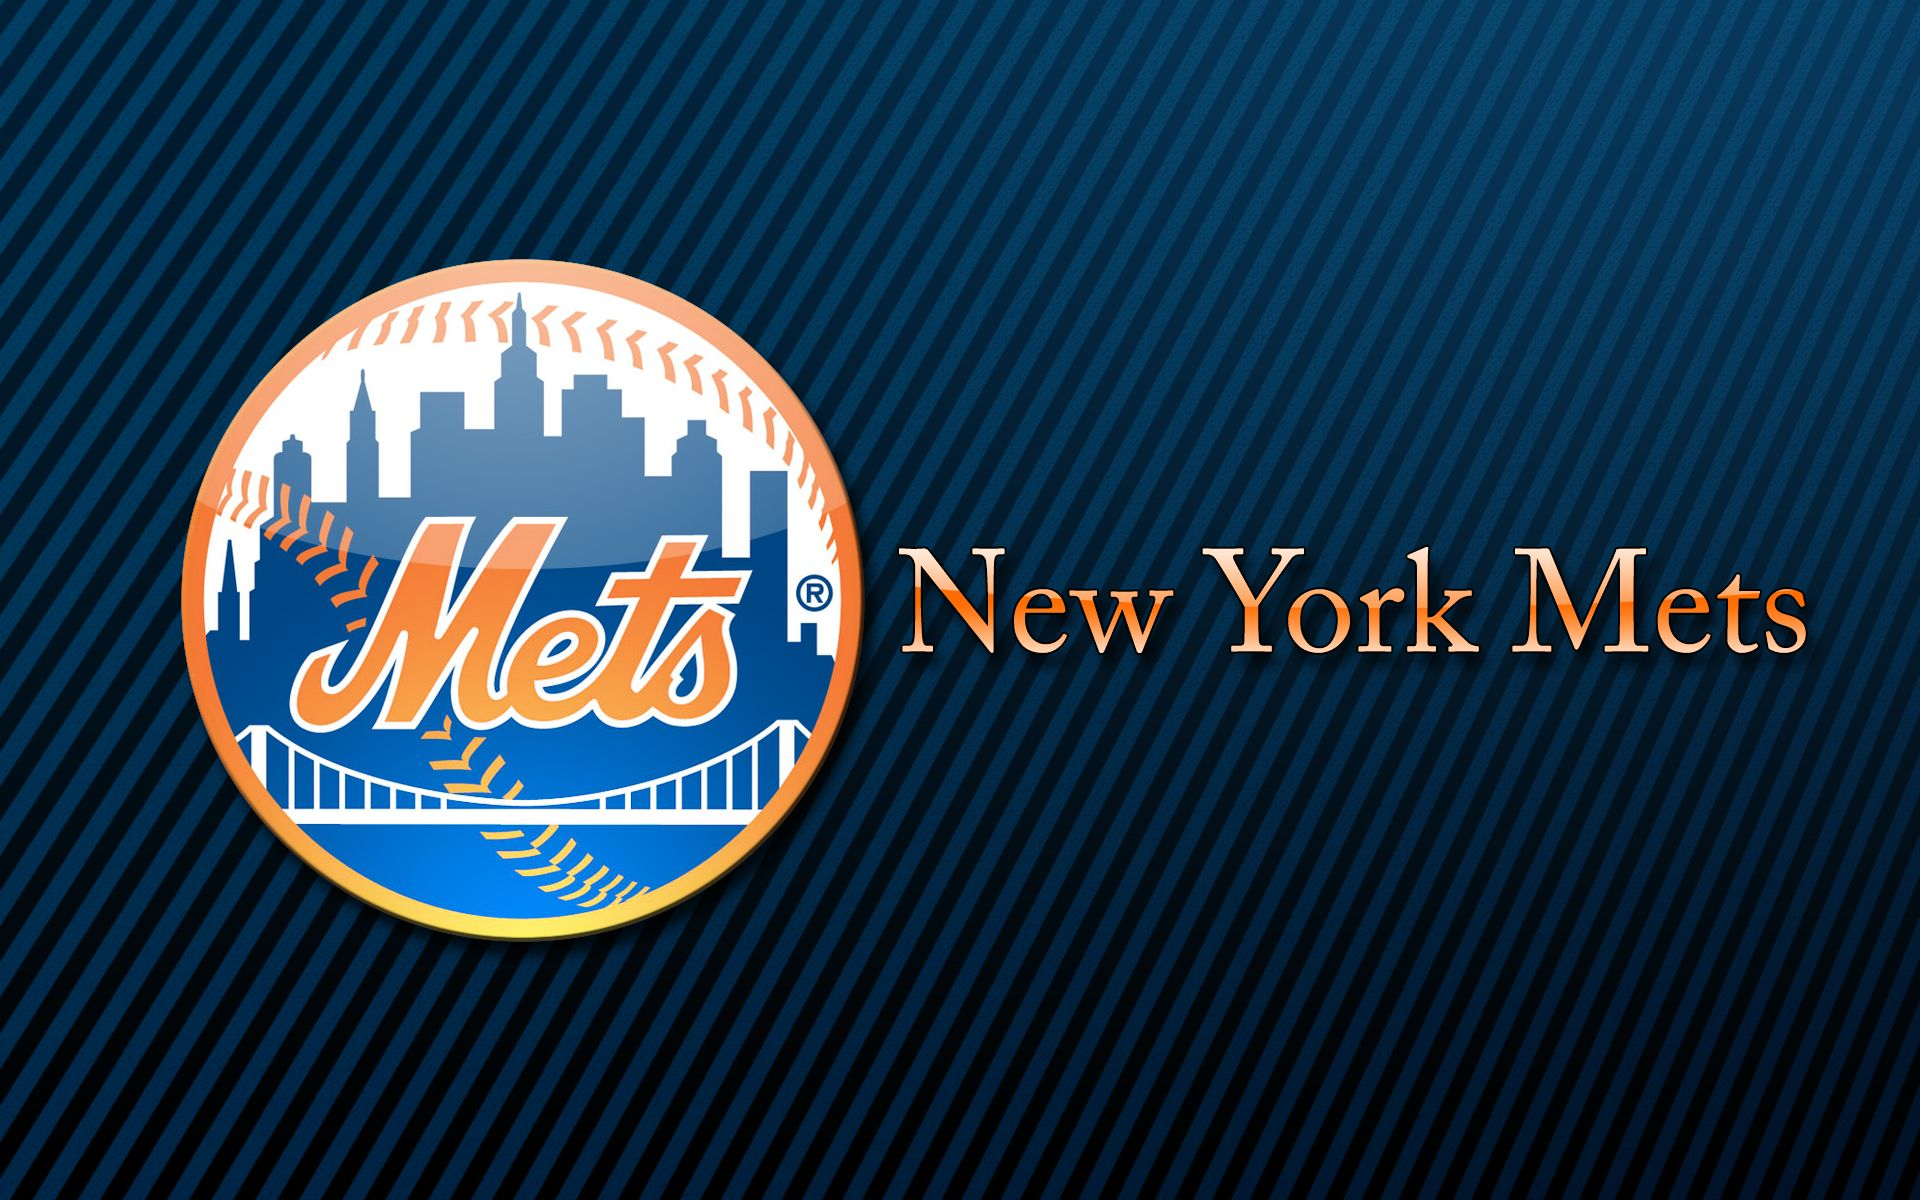 New York Mets Logo The Ultimate New York Mets Desktop Wallpaper Collection New York Mets Logo New York Mets Mets